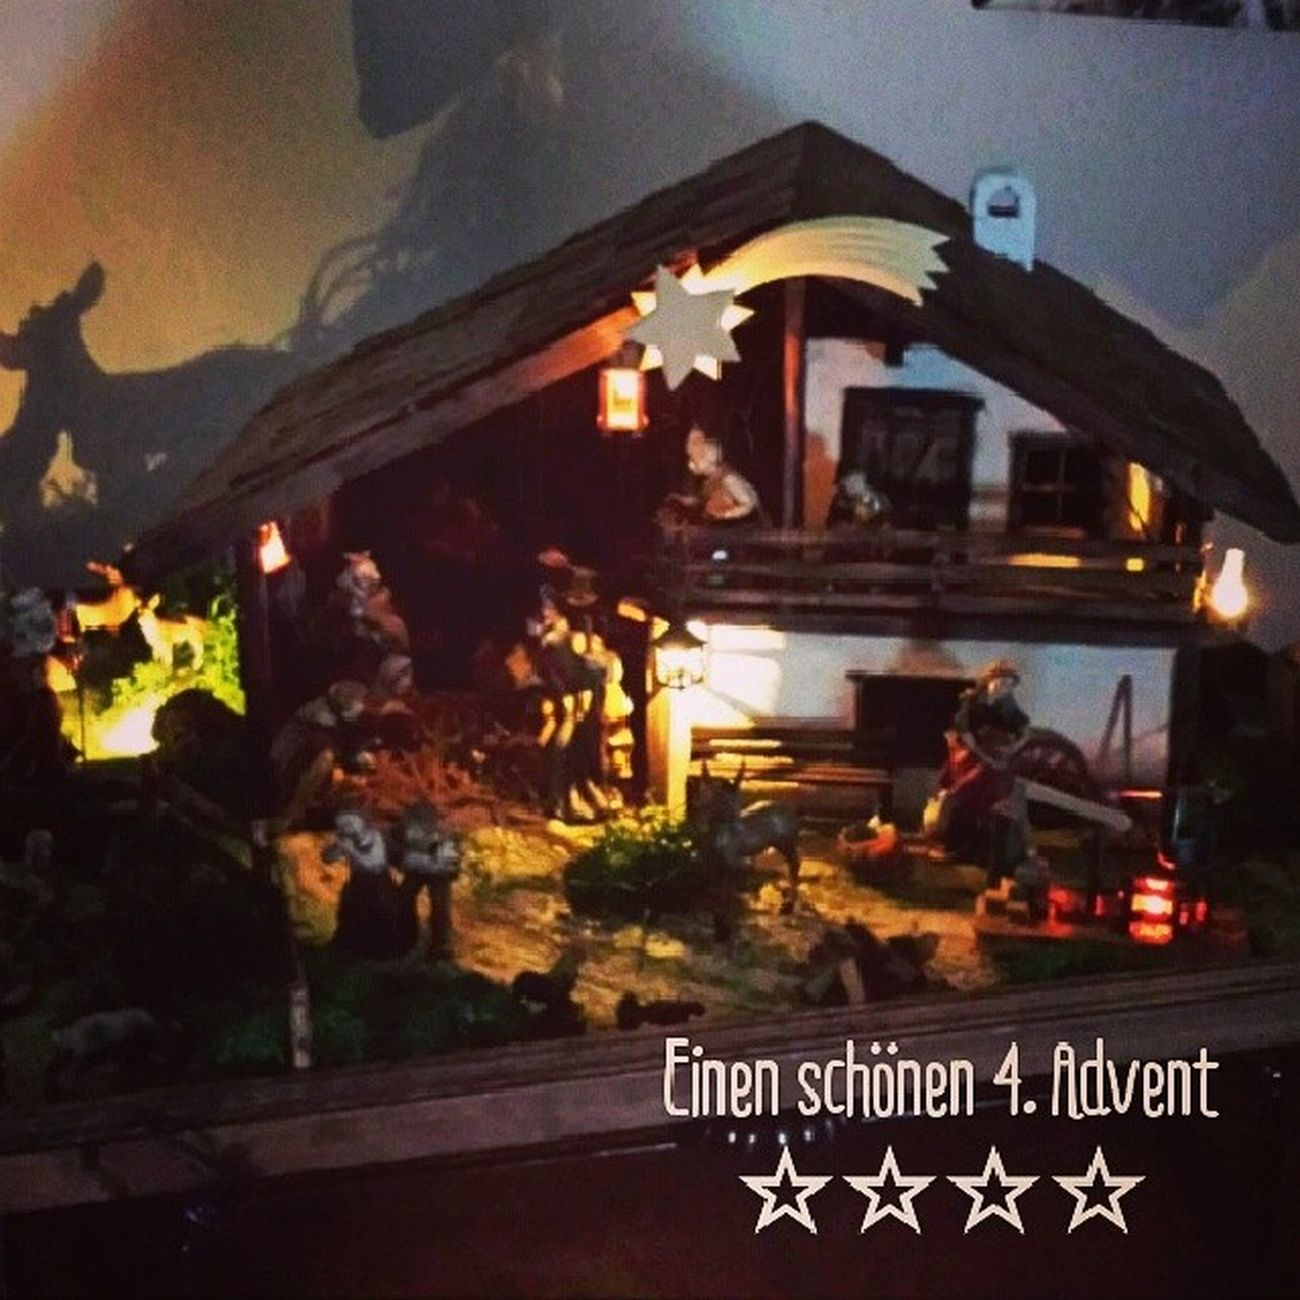 Christmas is coming... ? Advent 4advent Christmastime Christmas2013 christmasspirit christmasdecoration christmaslights christmasiscoming crib weihnachtskrippe nativityscene